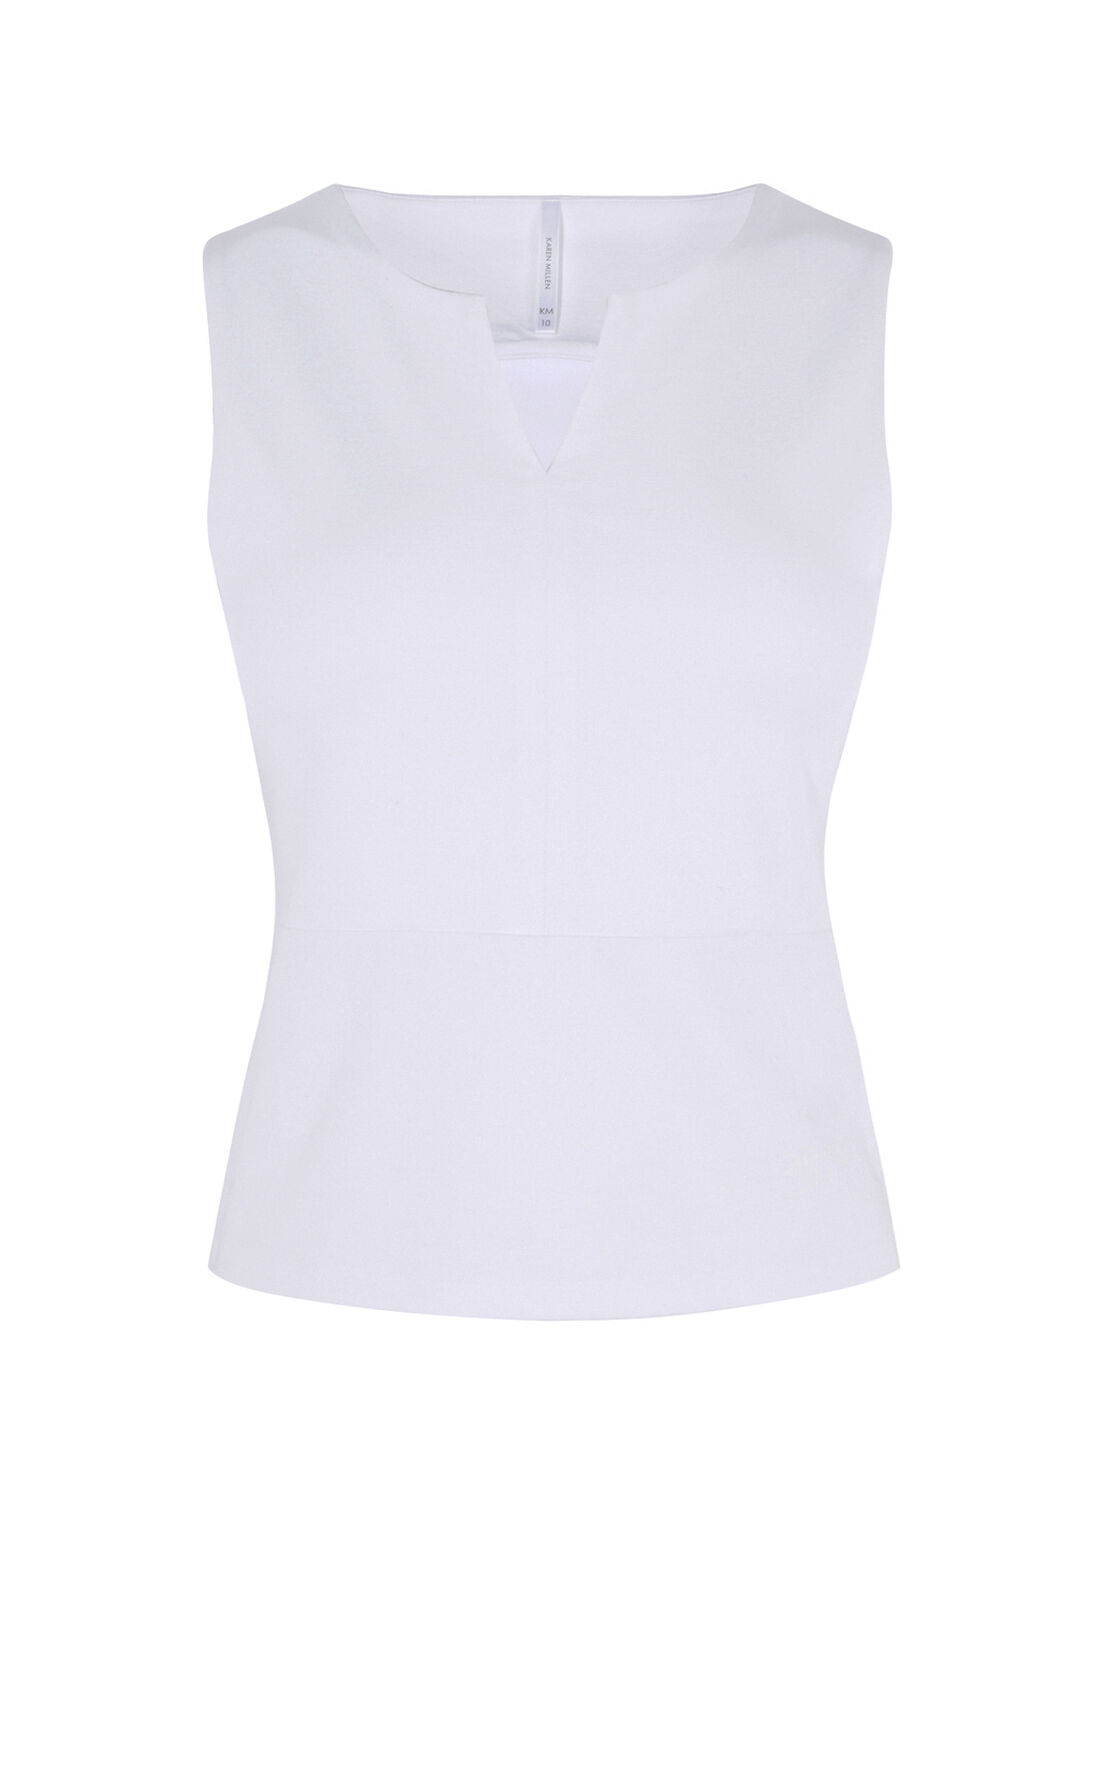 Karen Millen, CUT OUT TOP White 0